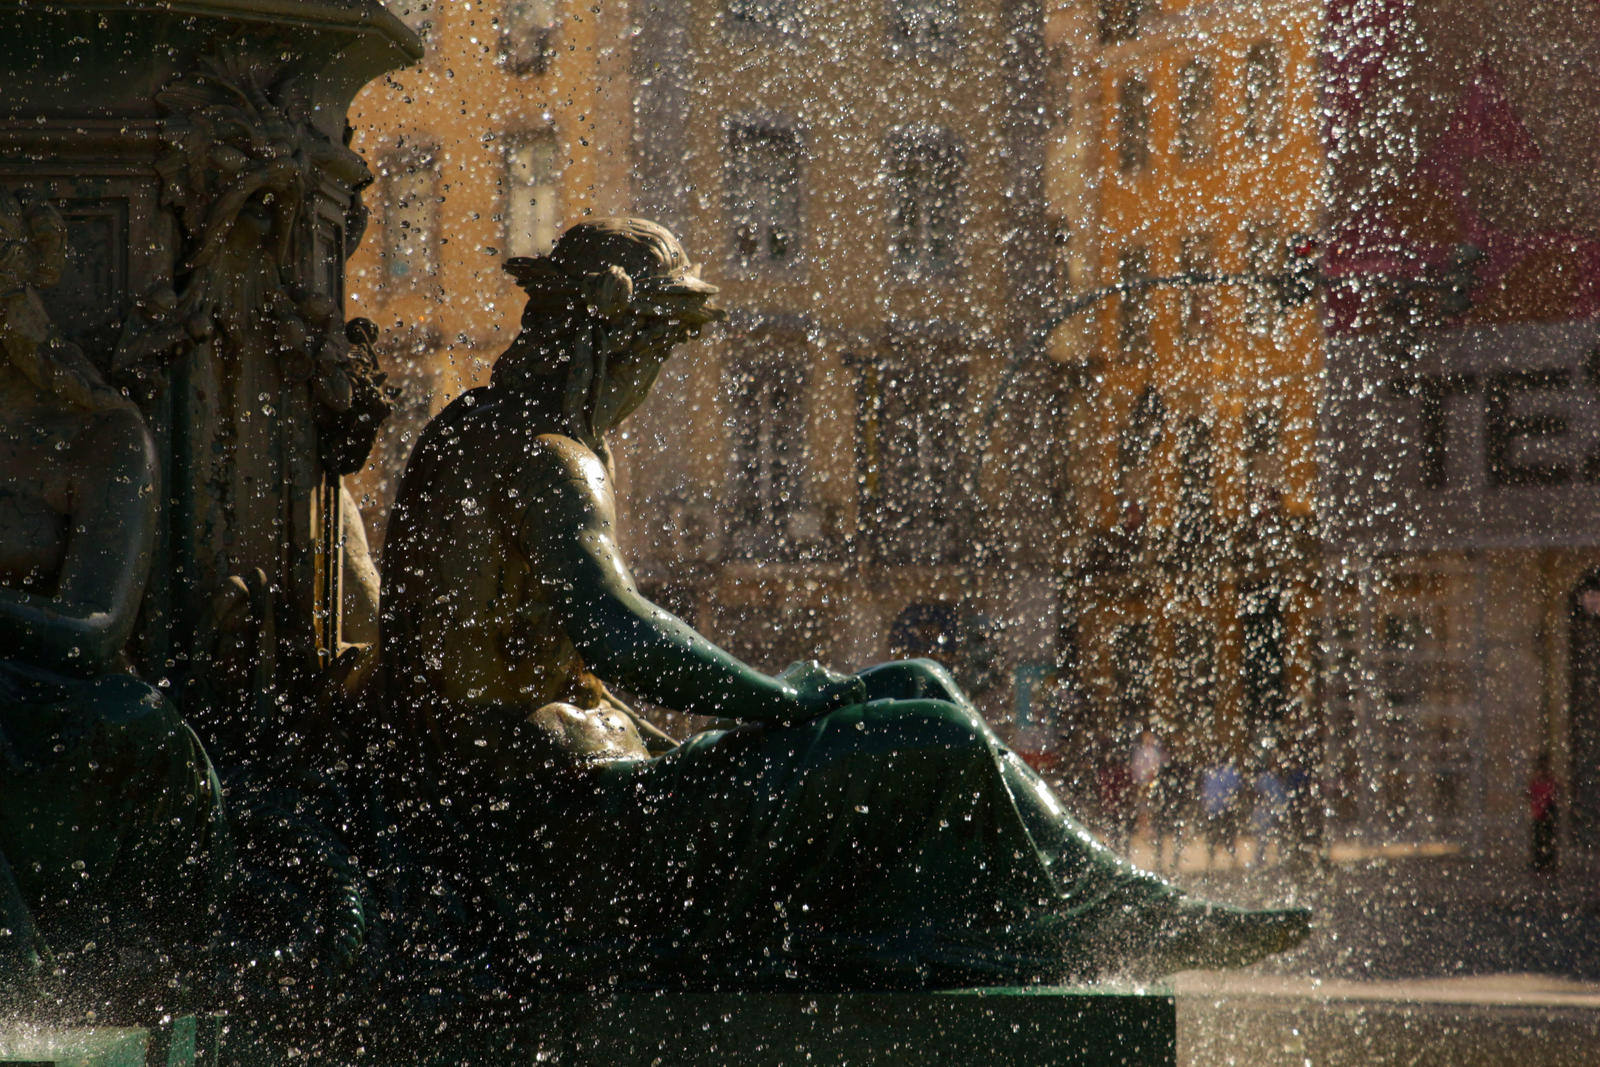 Lisboa - Water on Statue by LoveForDetails